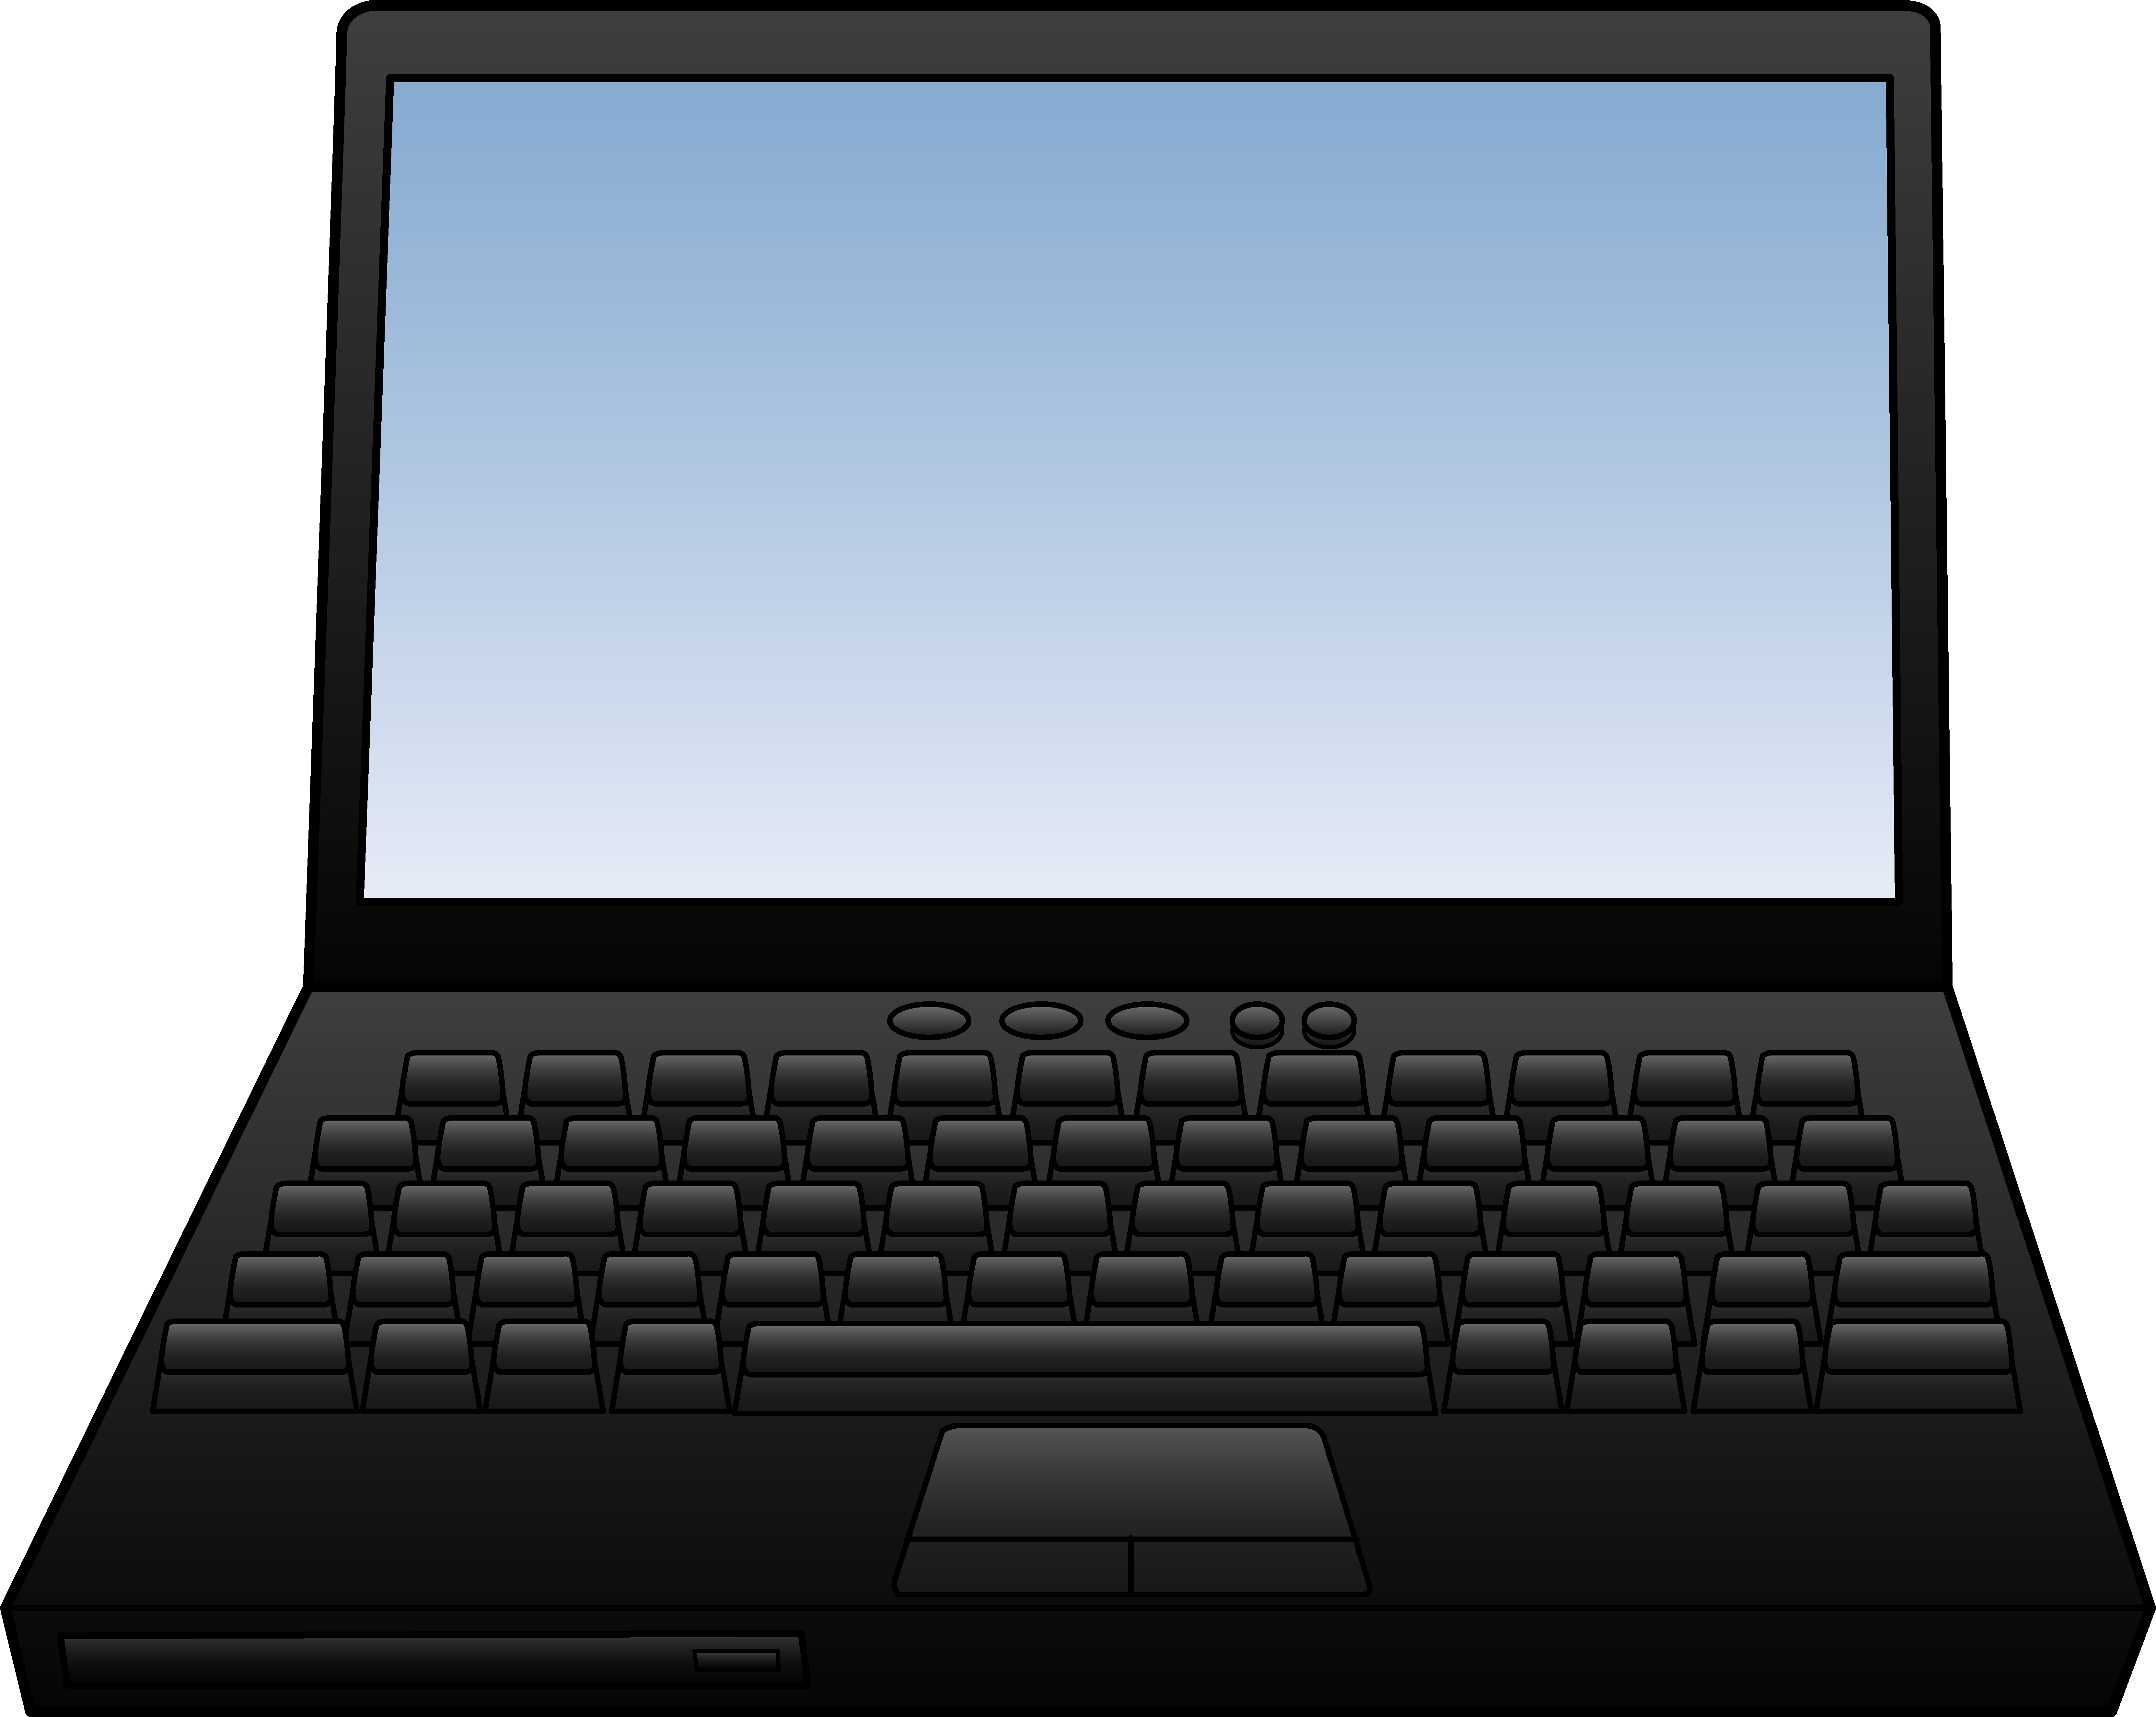 Free Laptop Clipart Free Clipart Graphic-Free Laptop Clipart Free Clipart Graphics Image And Photos-2